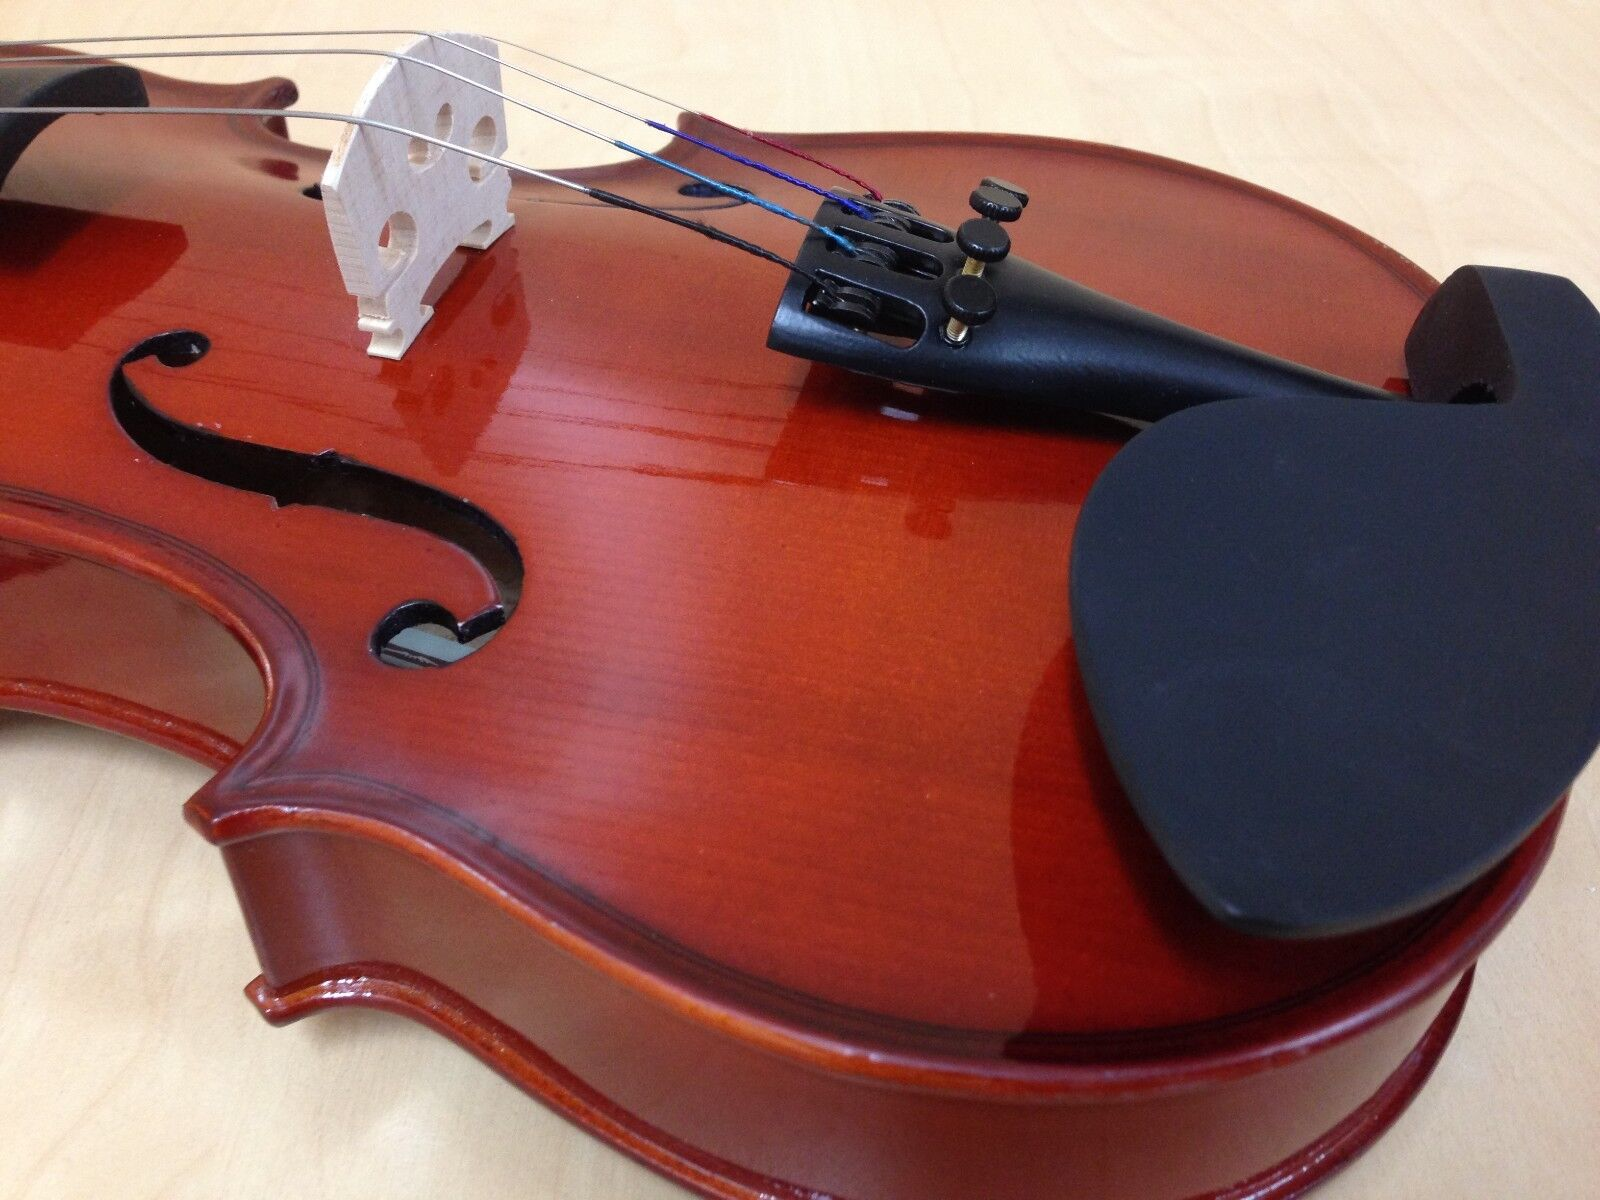 Caraya/Haze 3/4 Größe Pro-Beginner Violin+Extra String Set,Bow,Foam Case-Full Kit